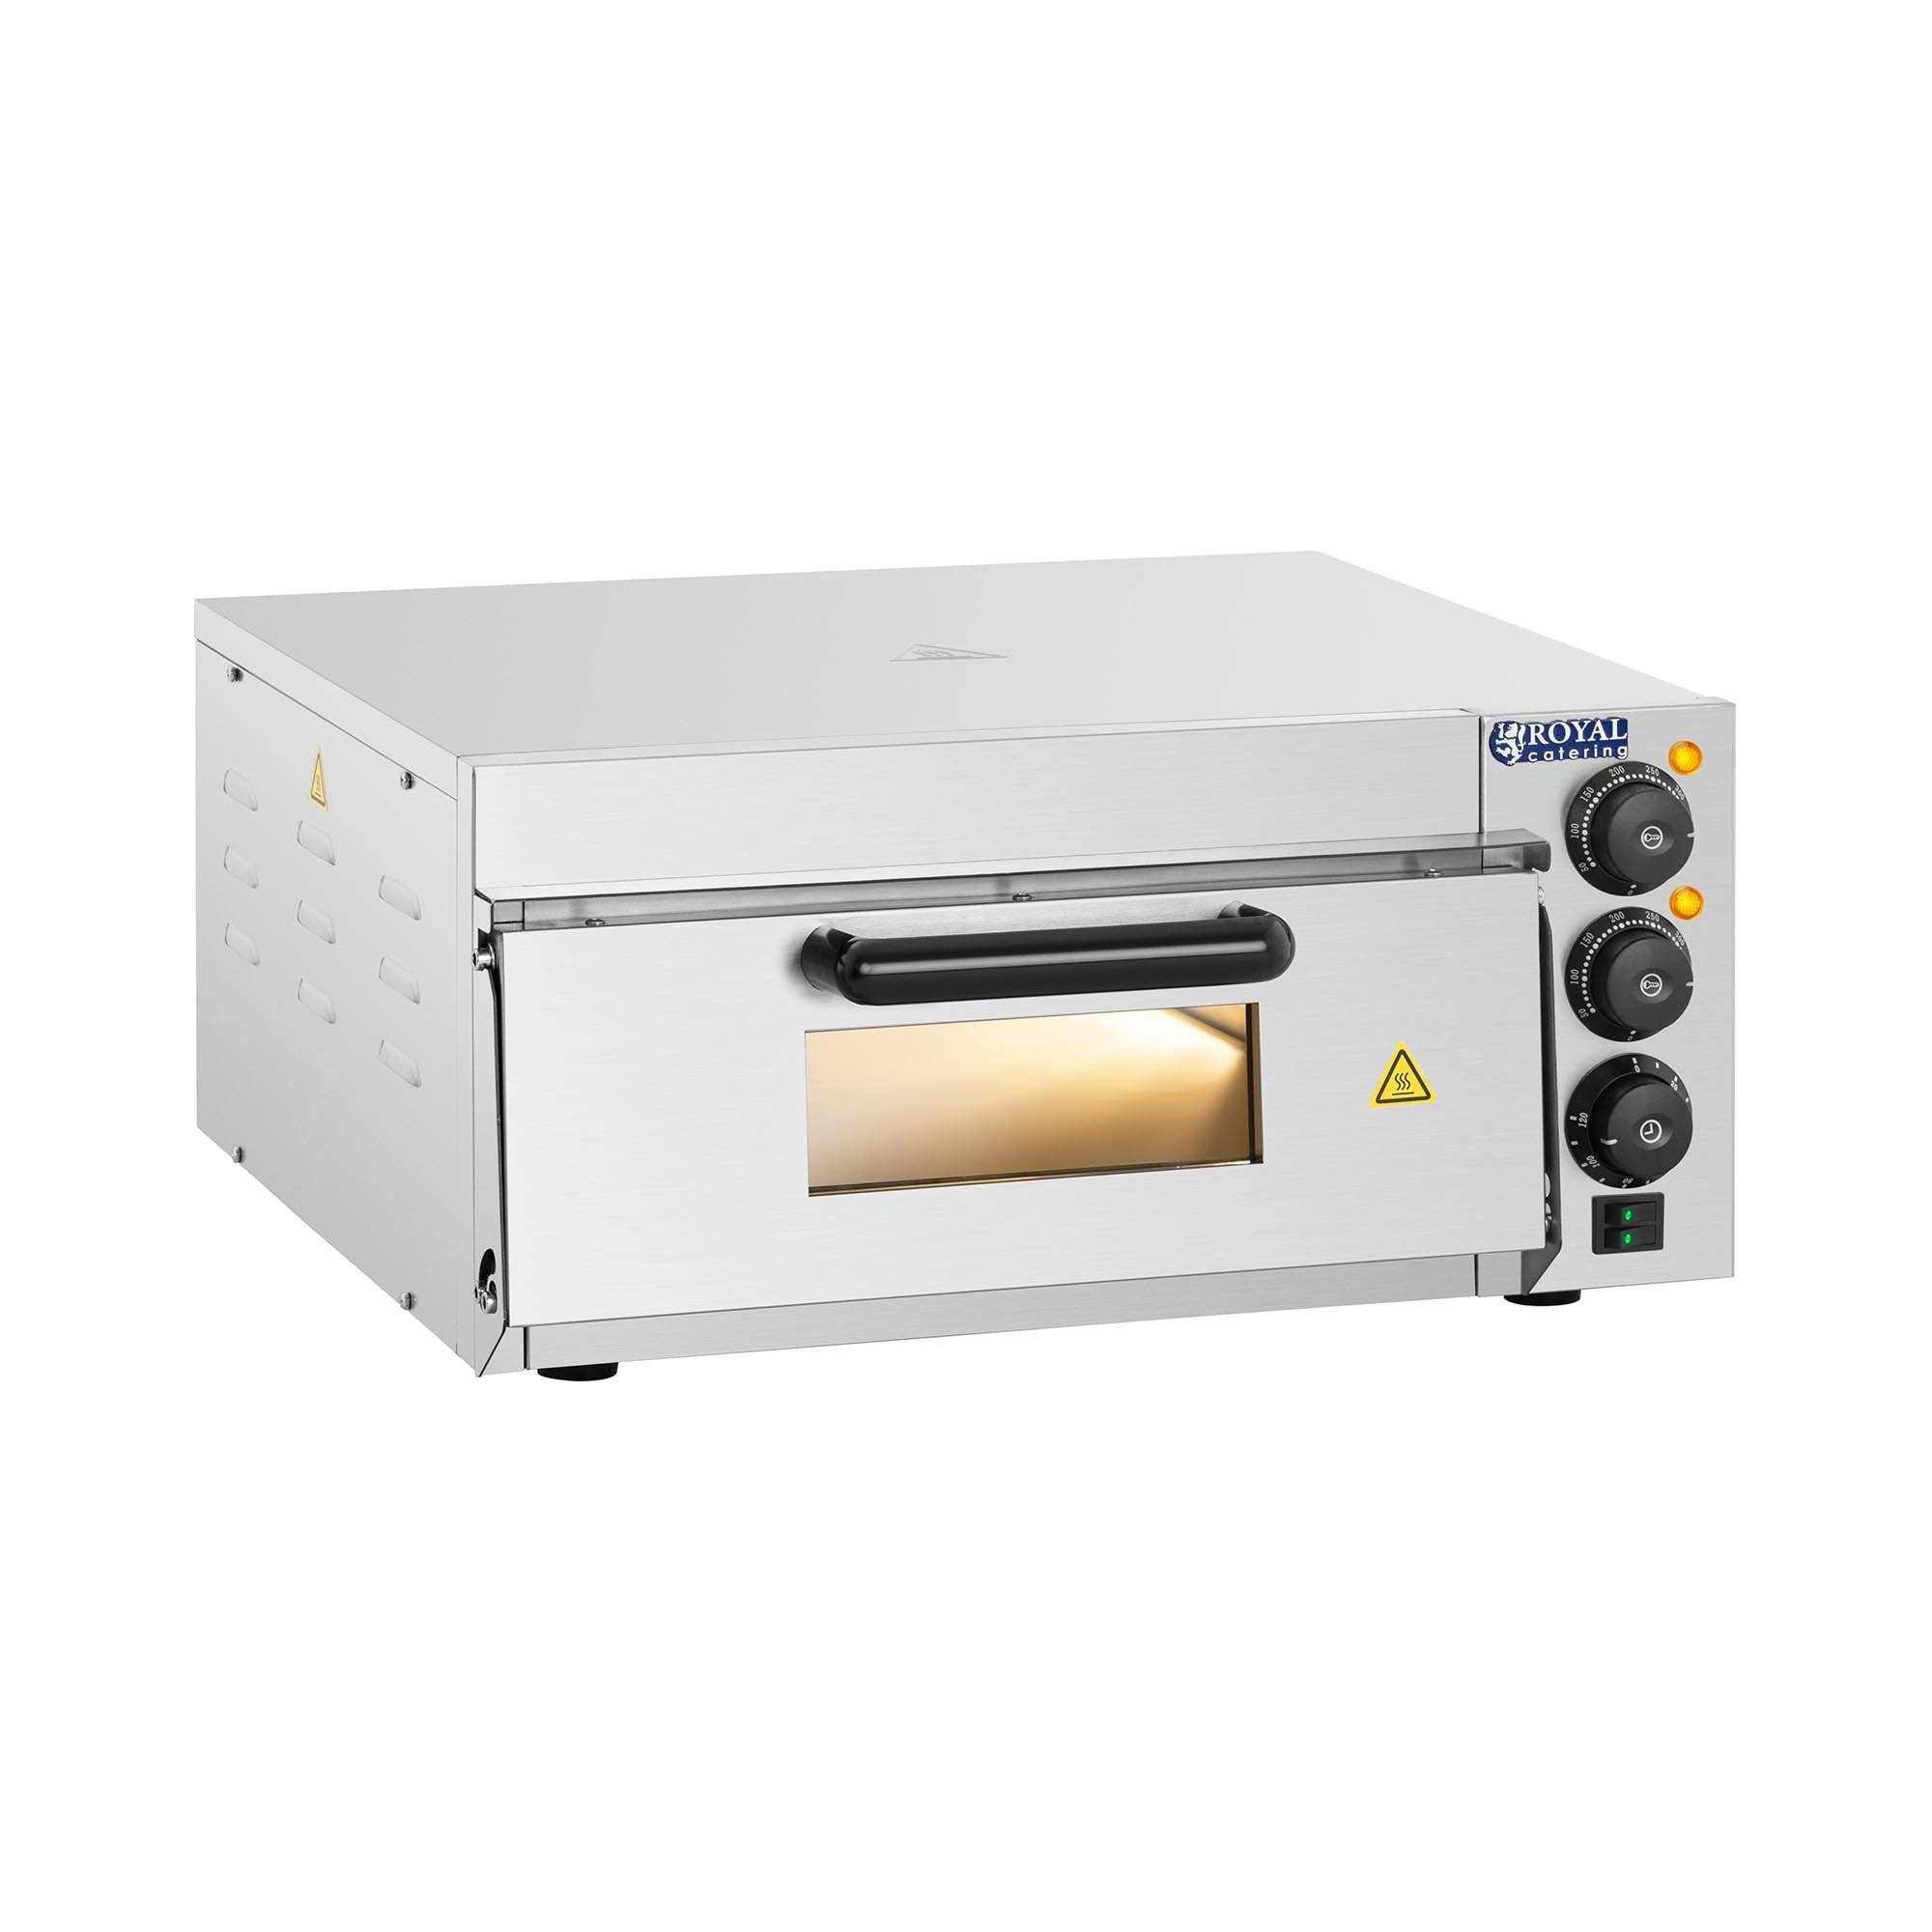 Royal Catering Pizza Oven - 1 chamber - 2,000 W